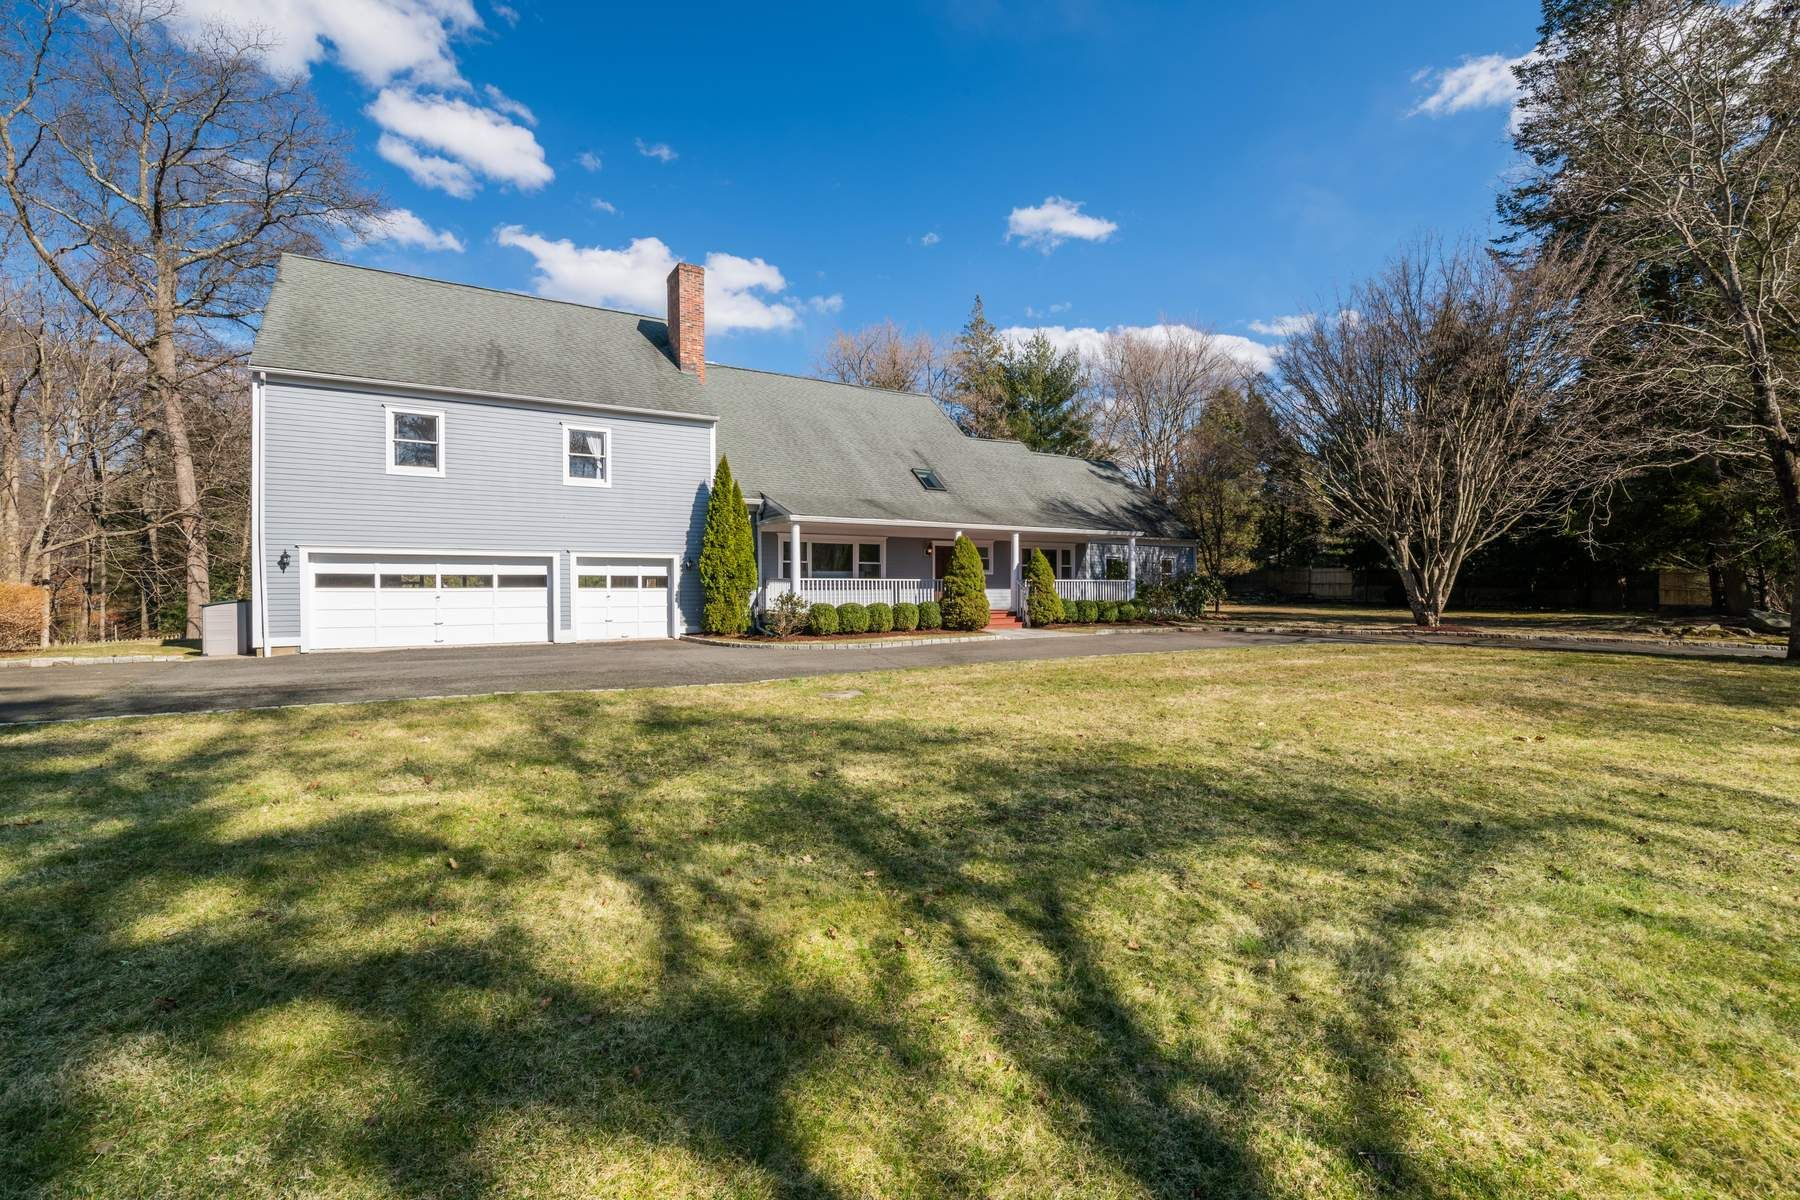 Single Family Home for Sale at 311 Cognewaugh Road 311 Cognewaugh Road Cos Cob, Connecticut 06807 United States